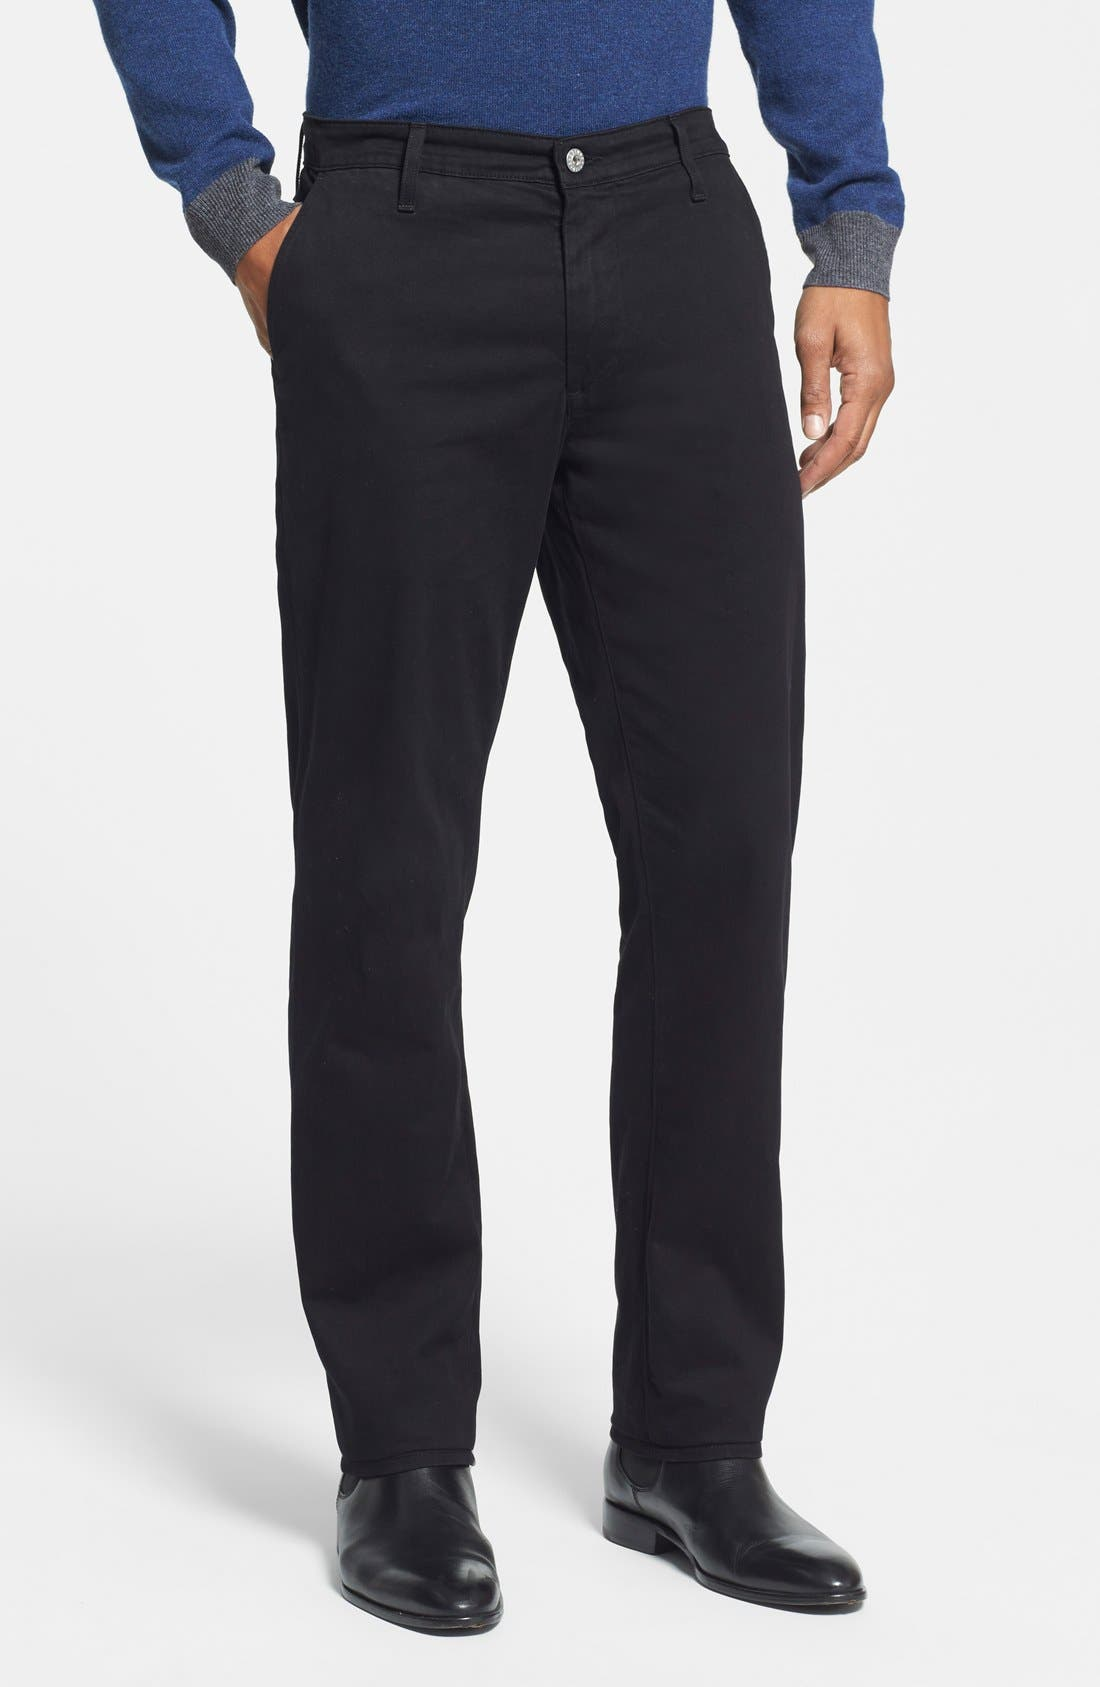 'The Lux' Tailored Straight Leg Chinos,                         Main,                         color, Black